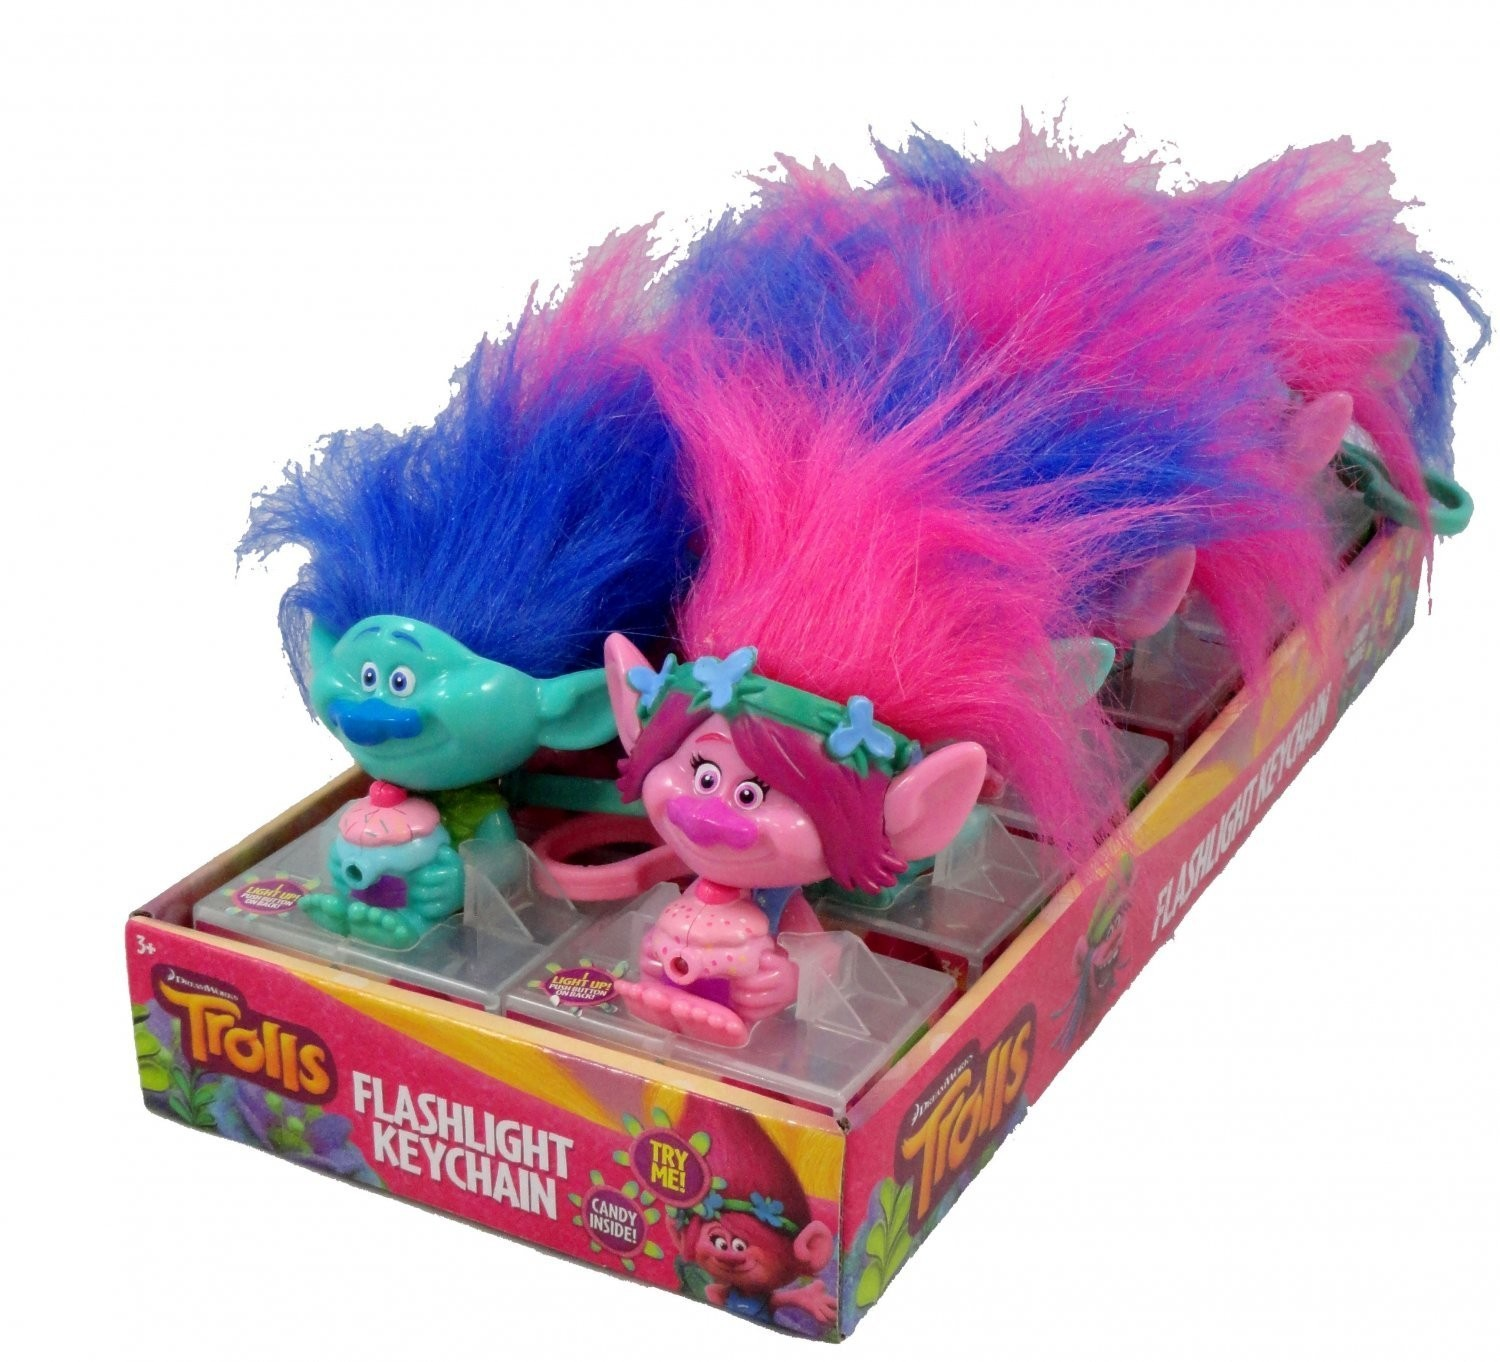 Dreamworks Trolls Character Flashlight, 2/12ct